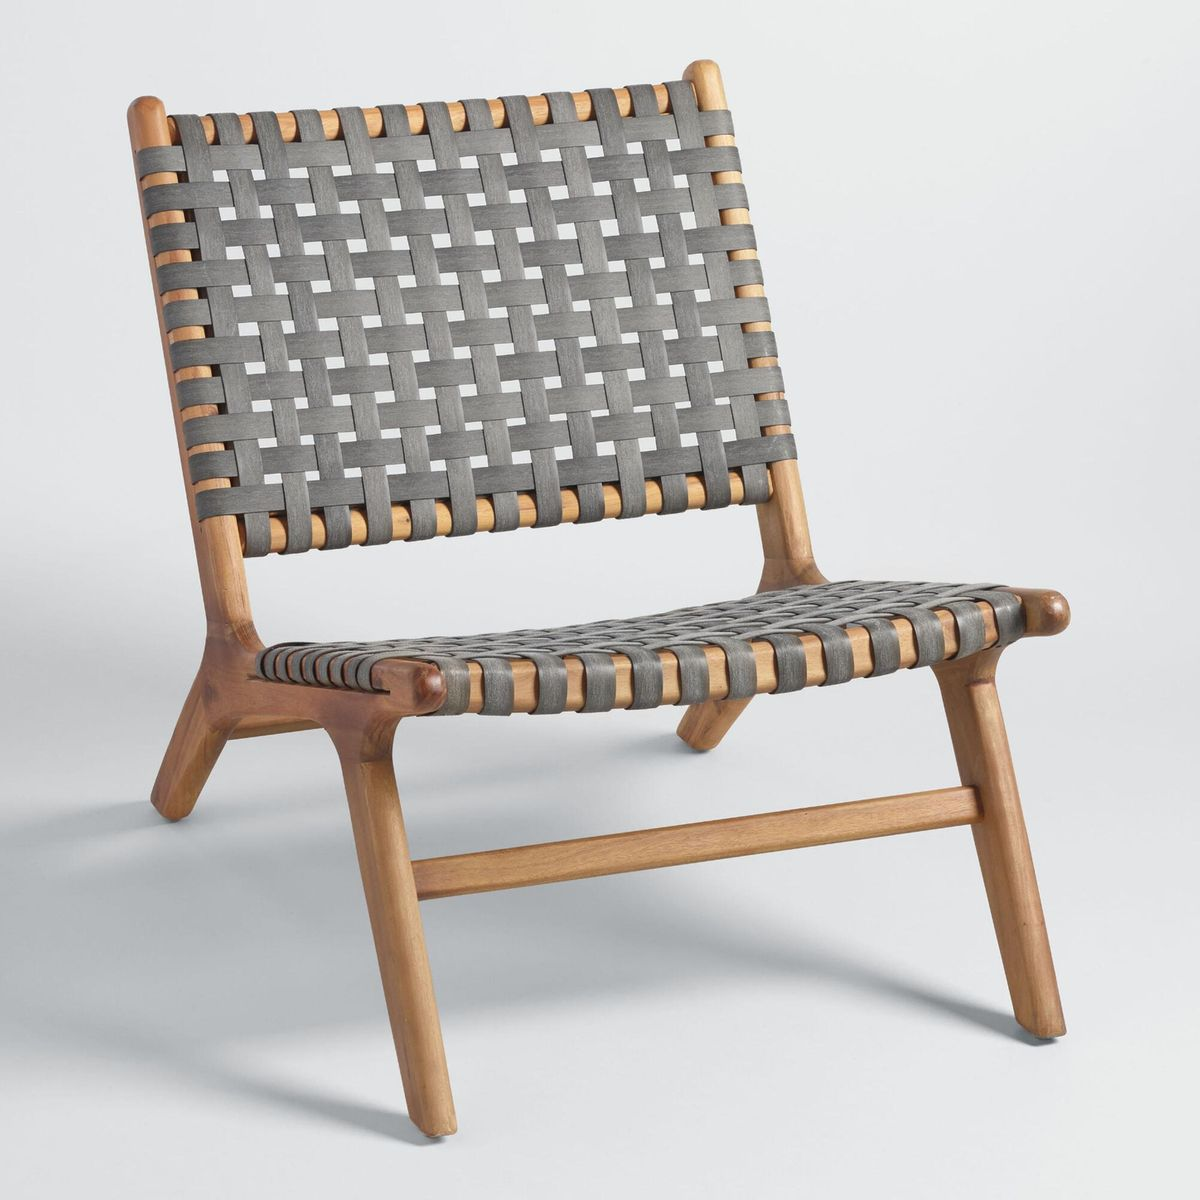 Woven wicker chairs.